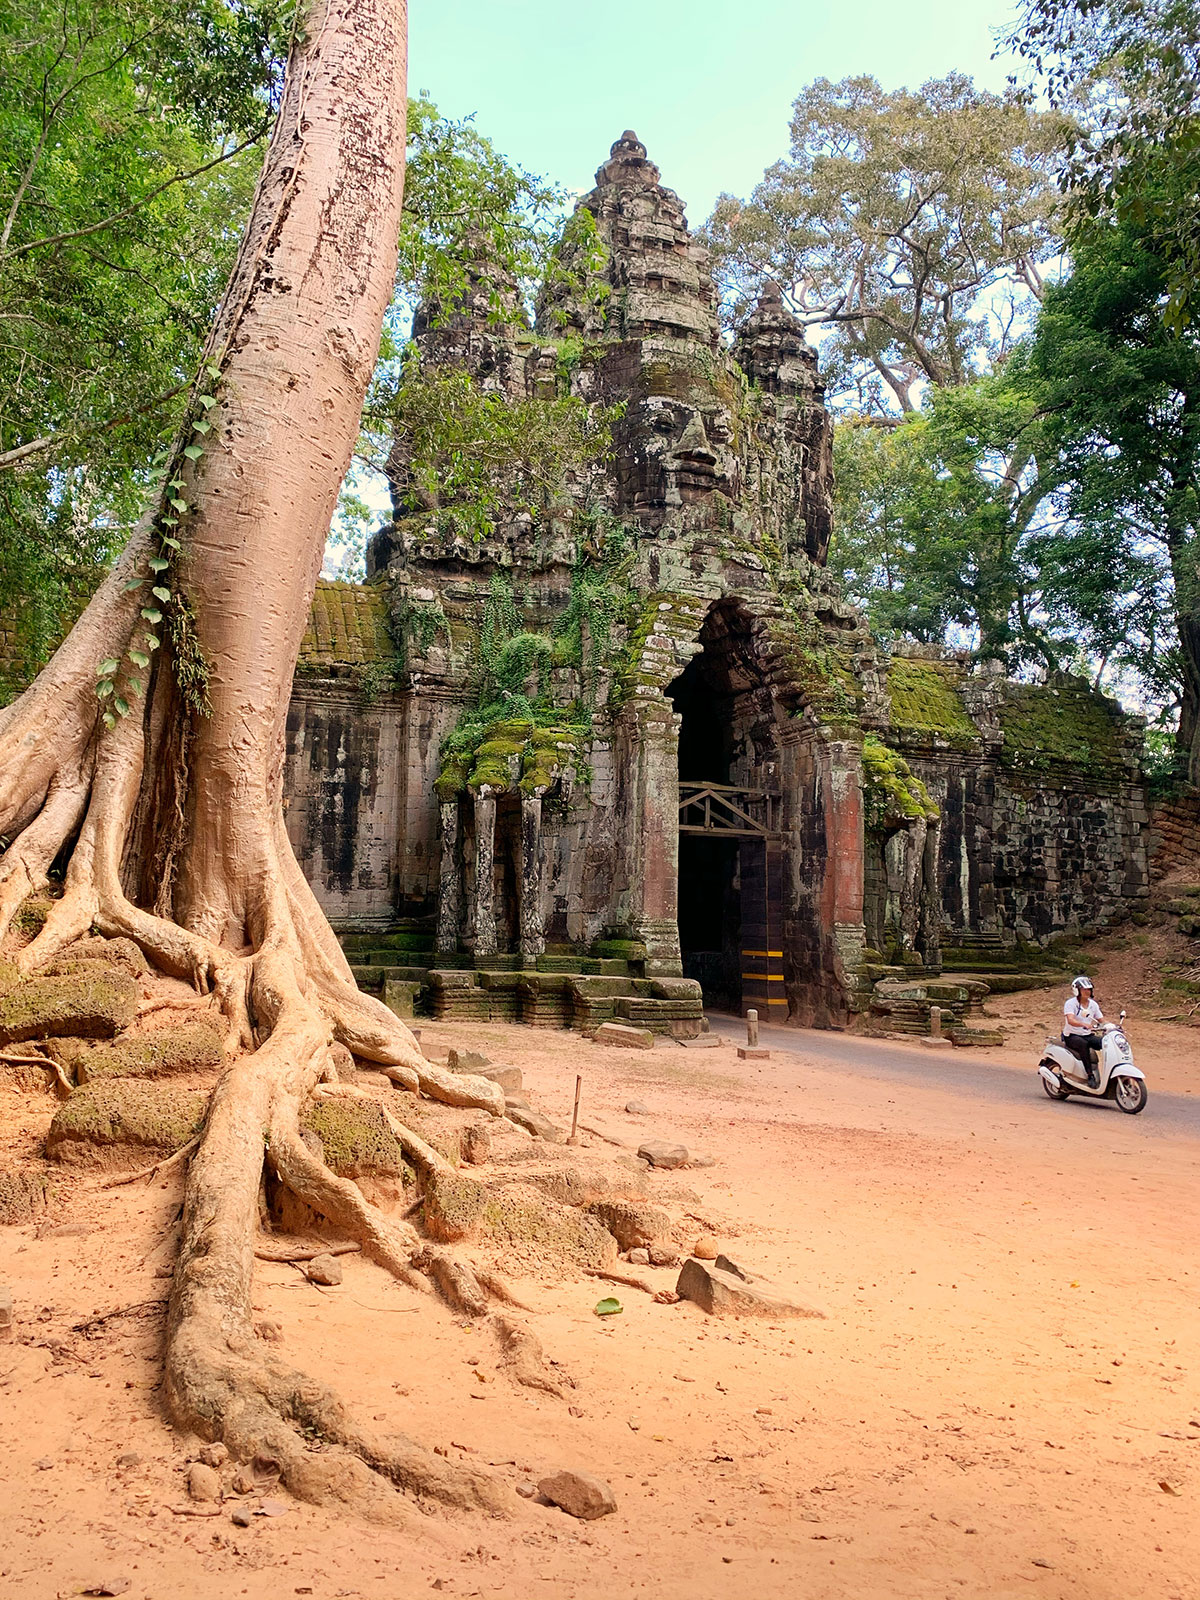 A Gate at Angkor Thom.